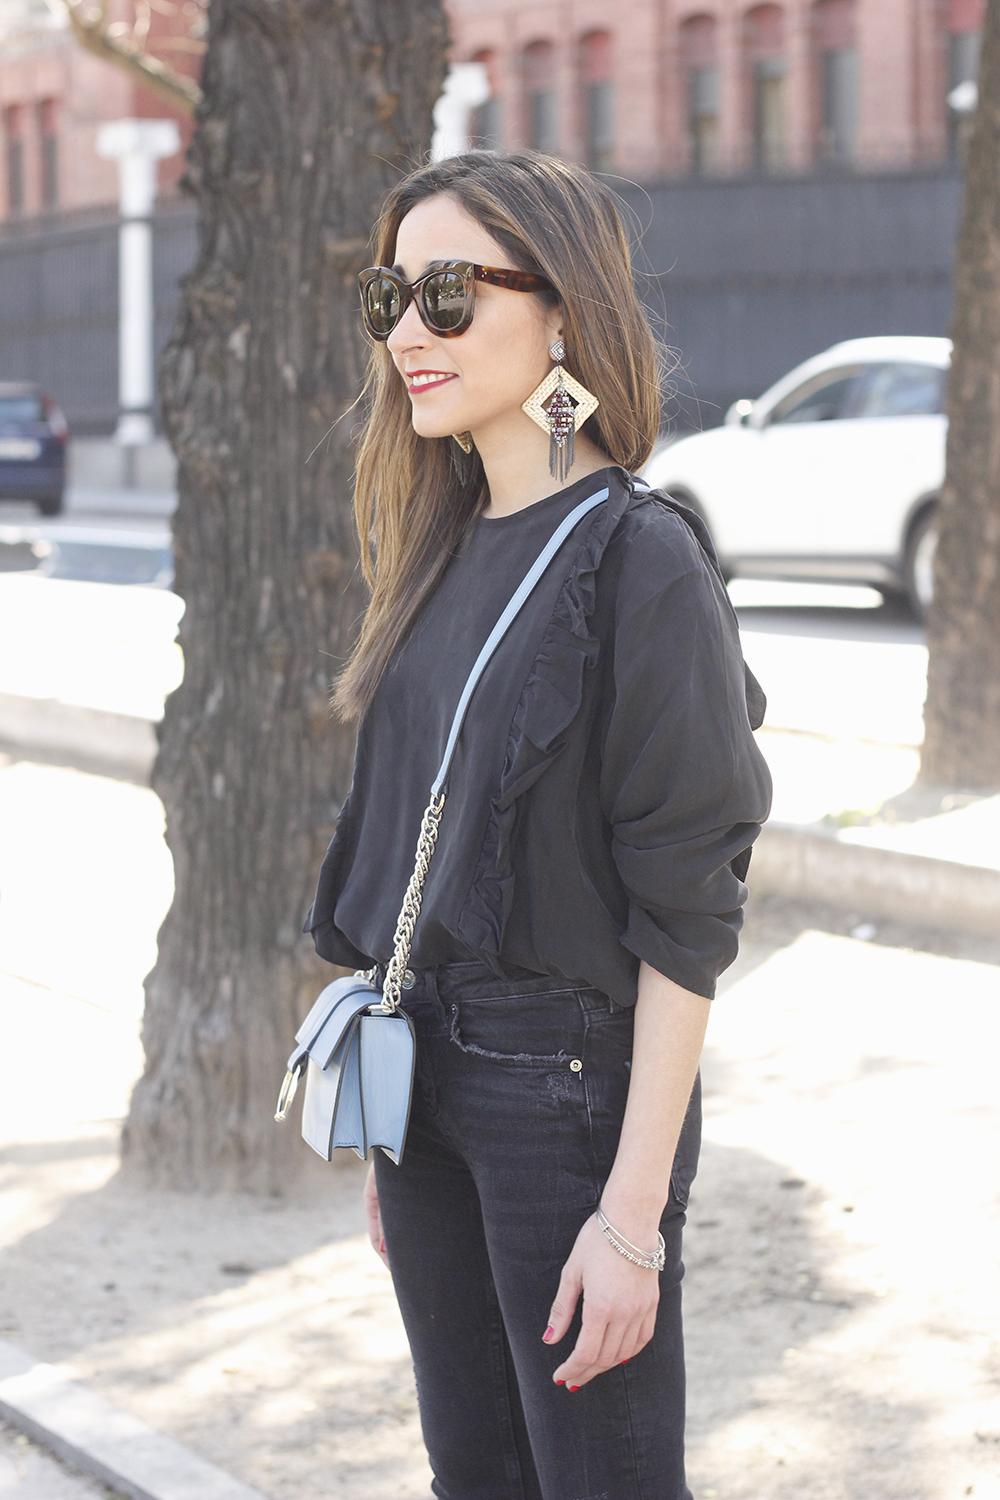 Black ruffled shirt black jeans uterqüe bag earrings sandals outfit style fashion céline sunnies spring06